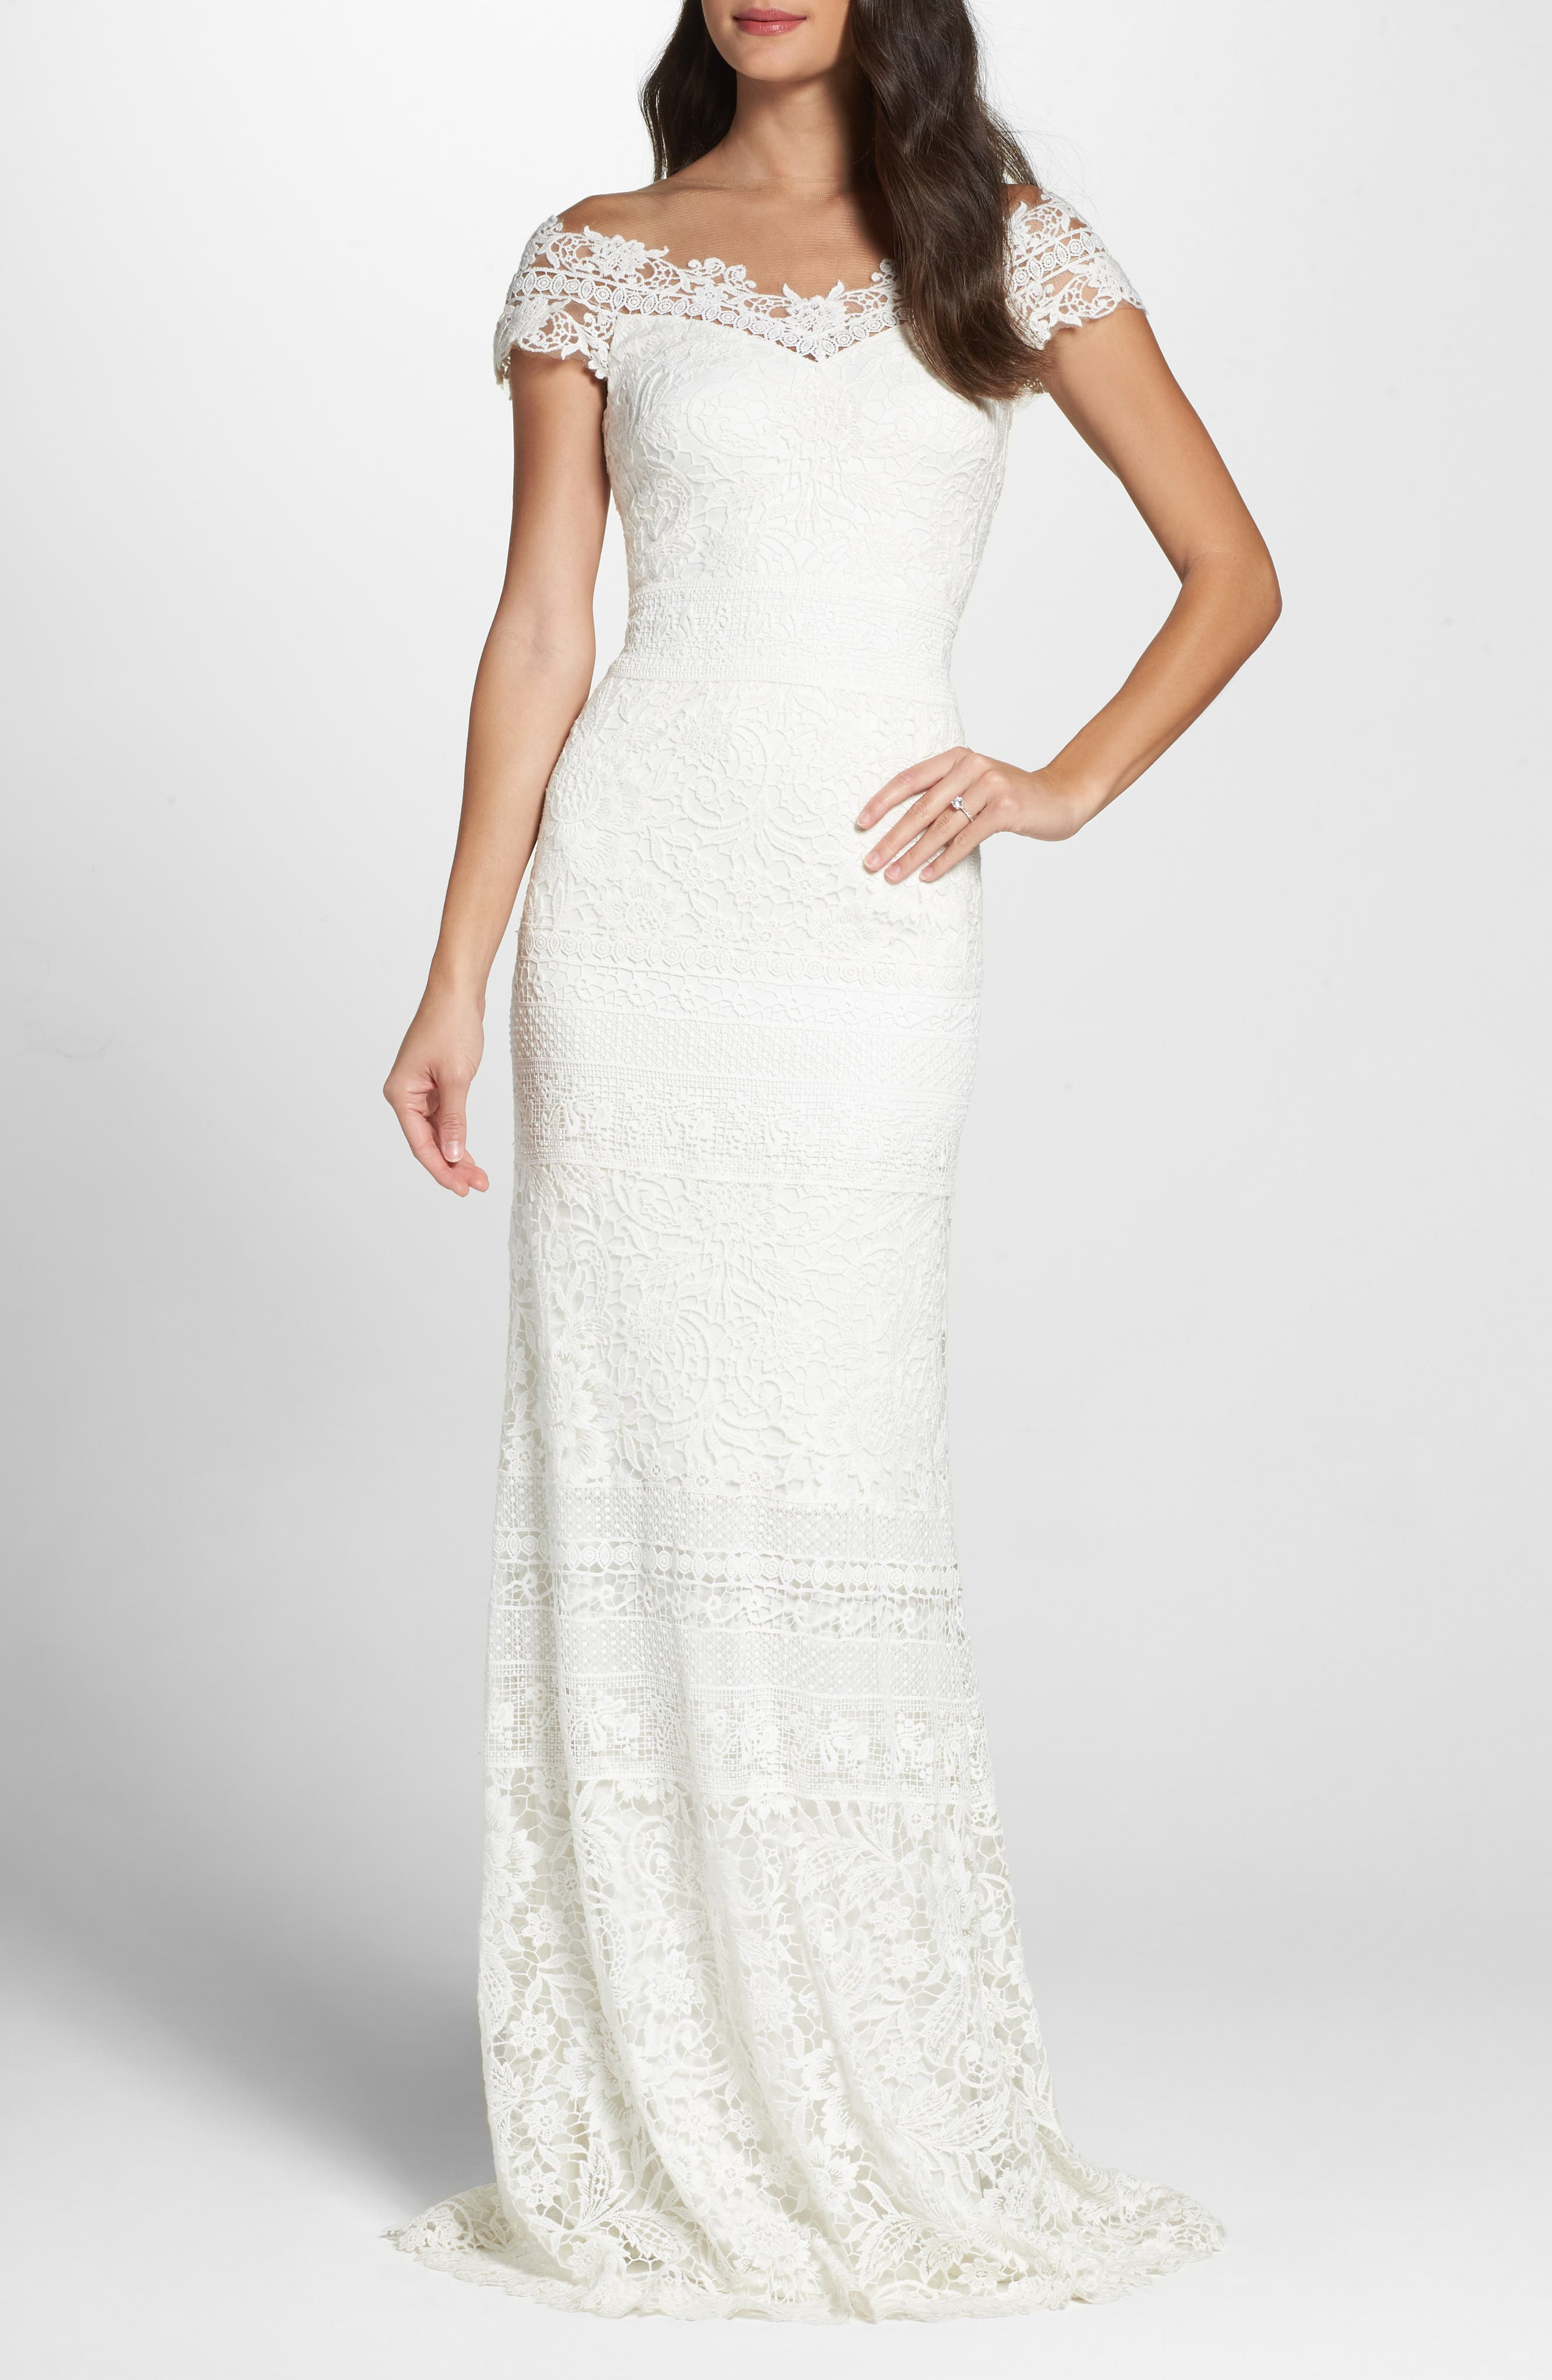 Alternate Image 1 Selected - Tadashi Shoji Off the Shoulder Illusion Lace Gown